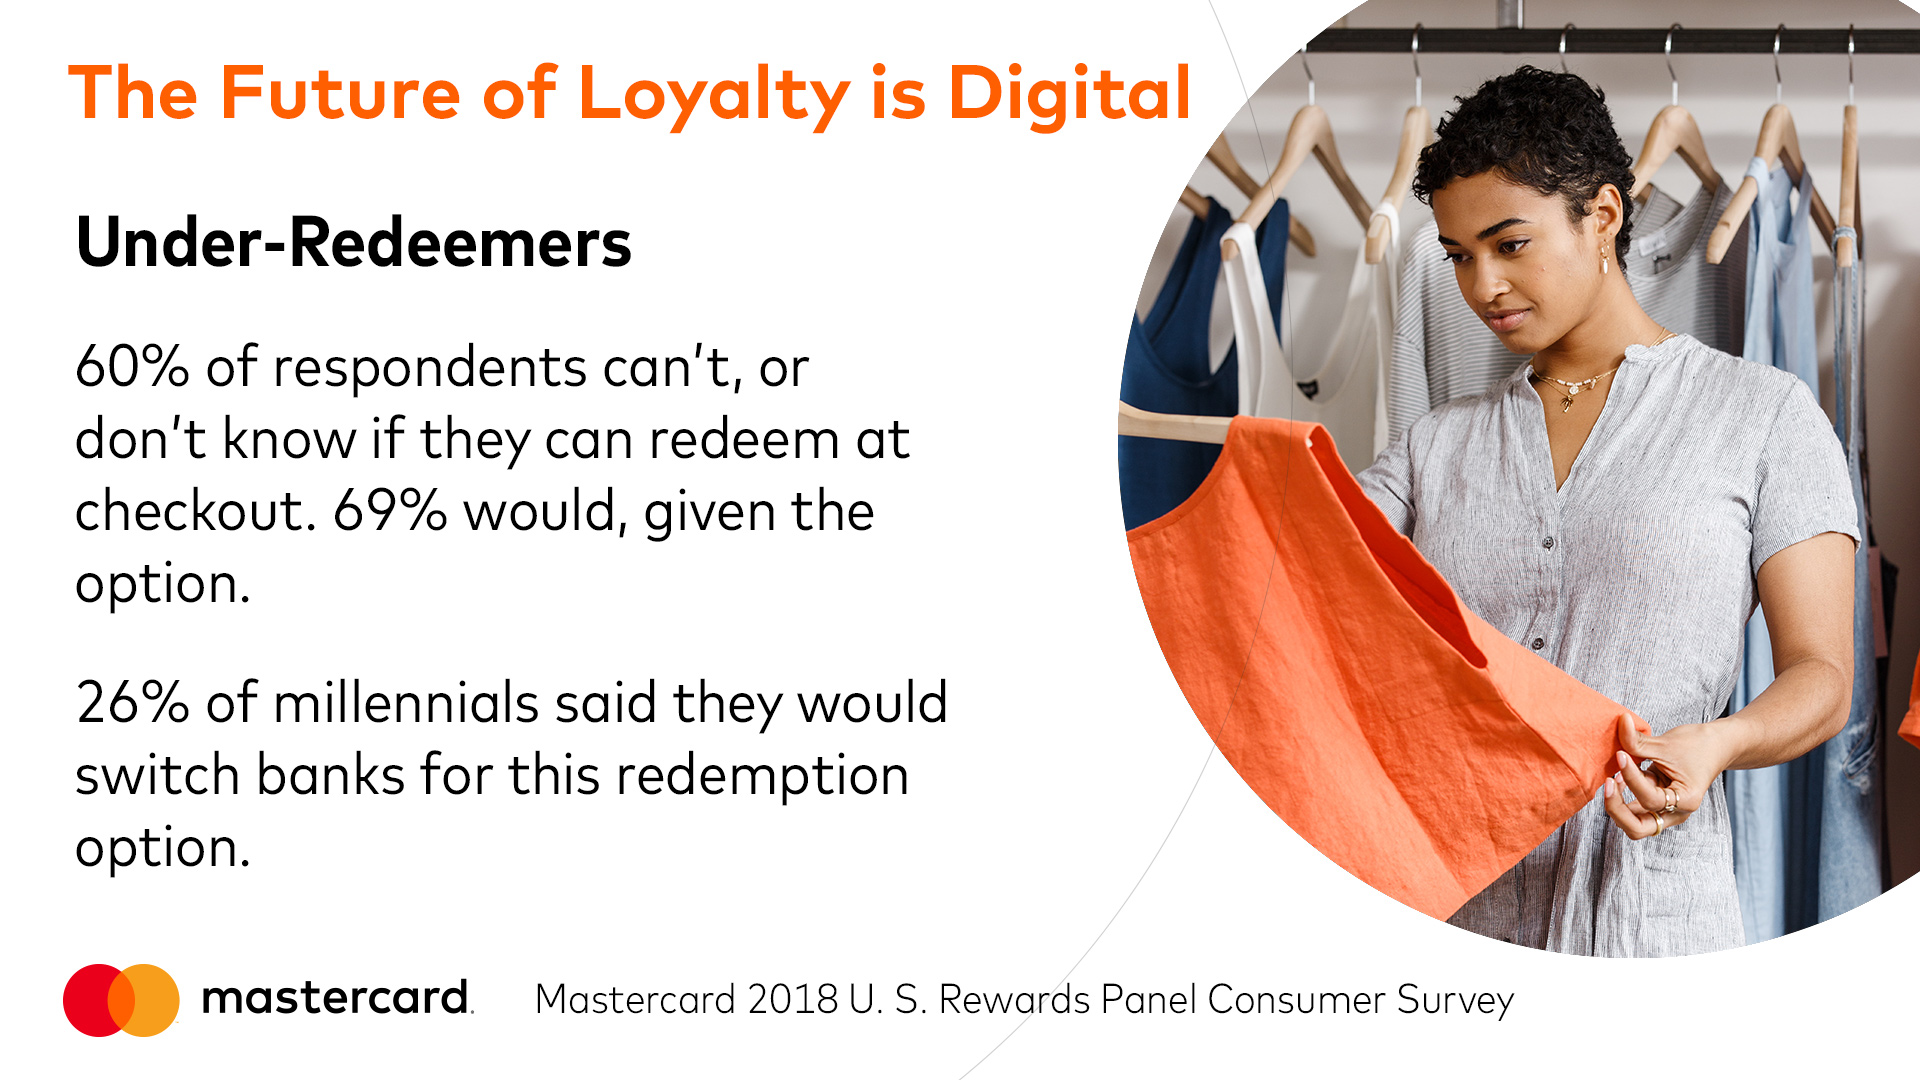 The Future of Loyalty is Digital